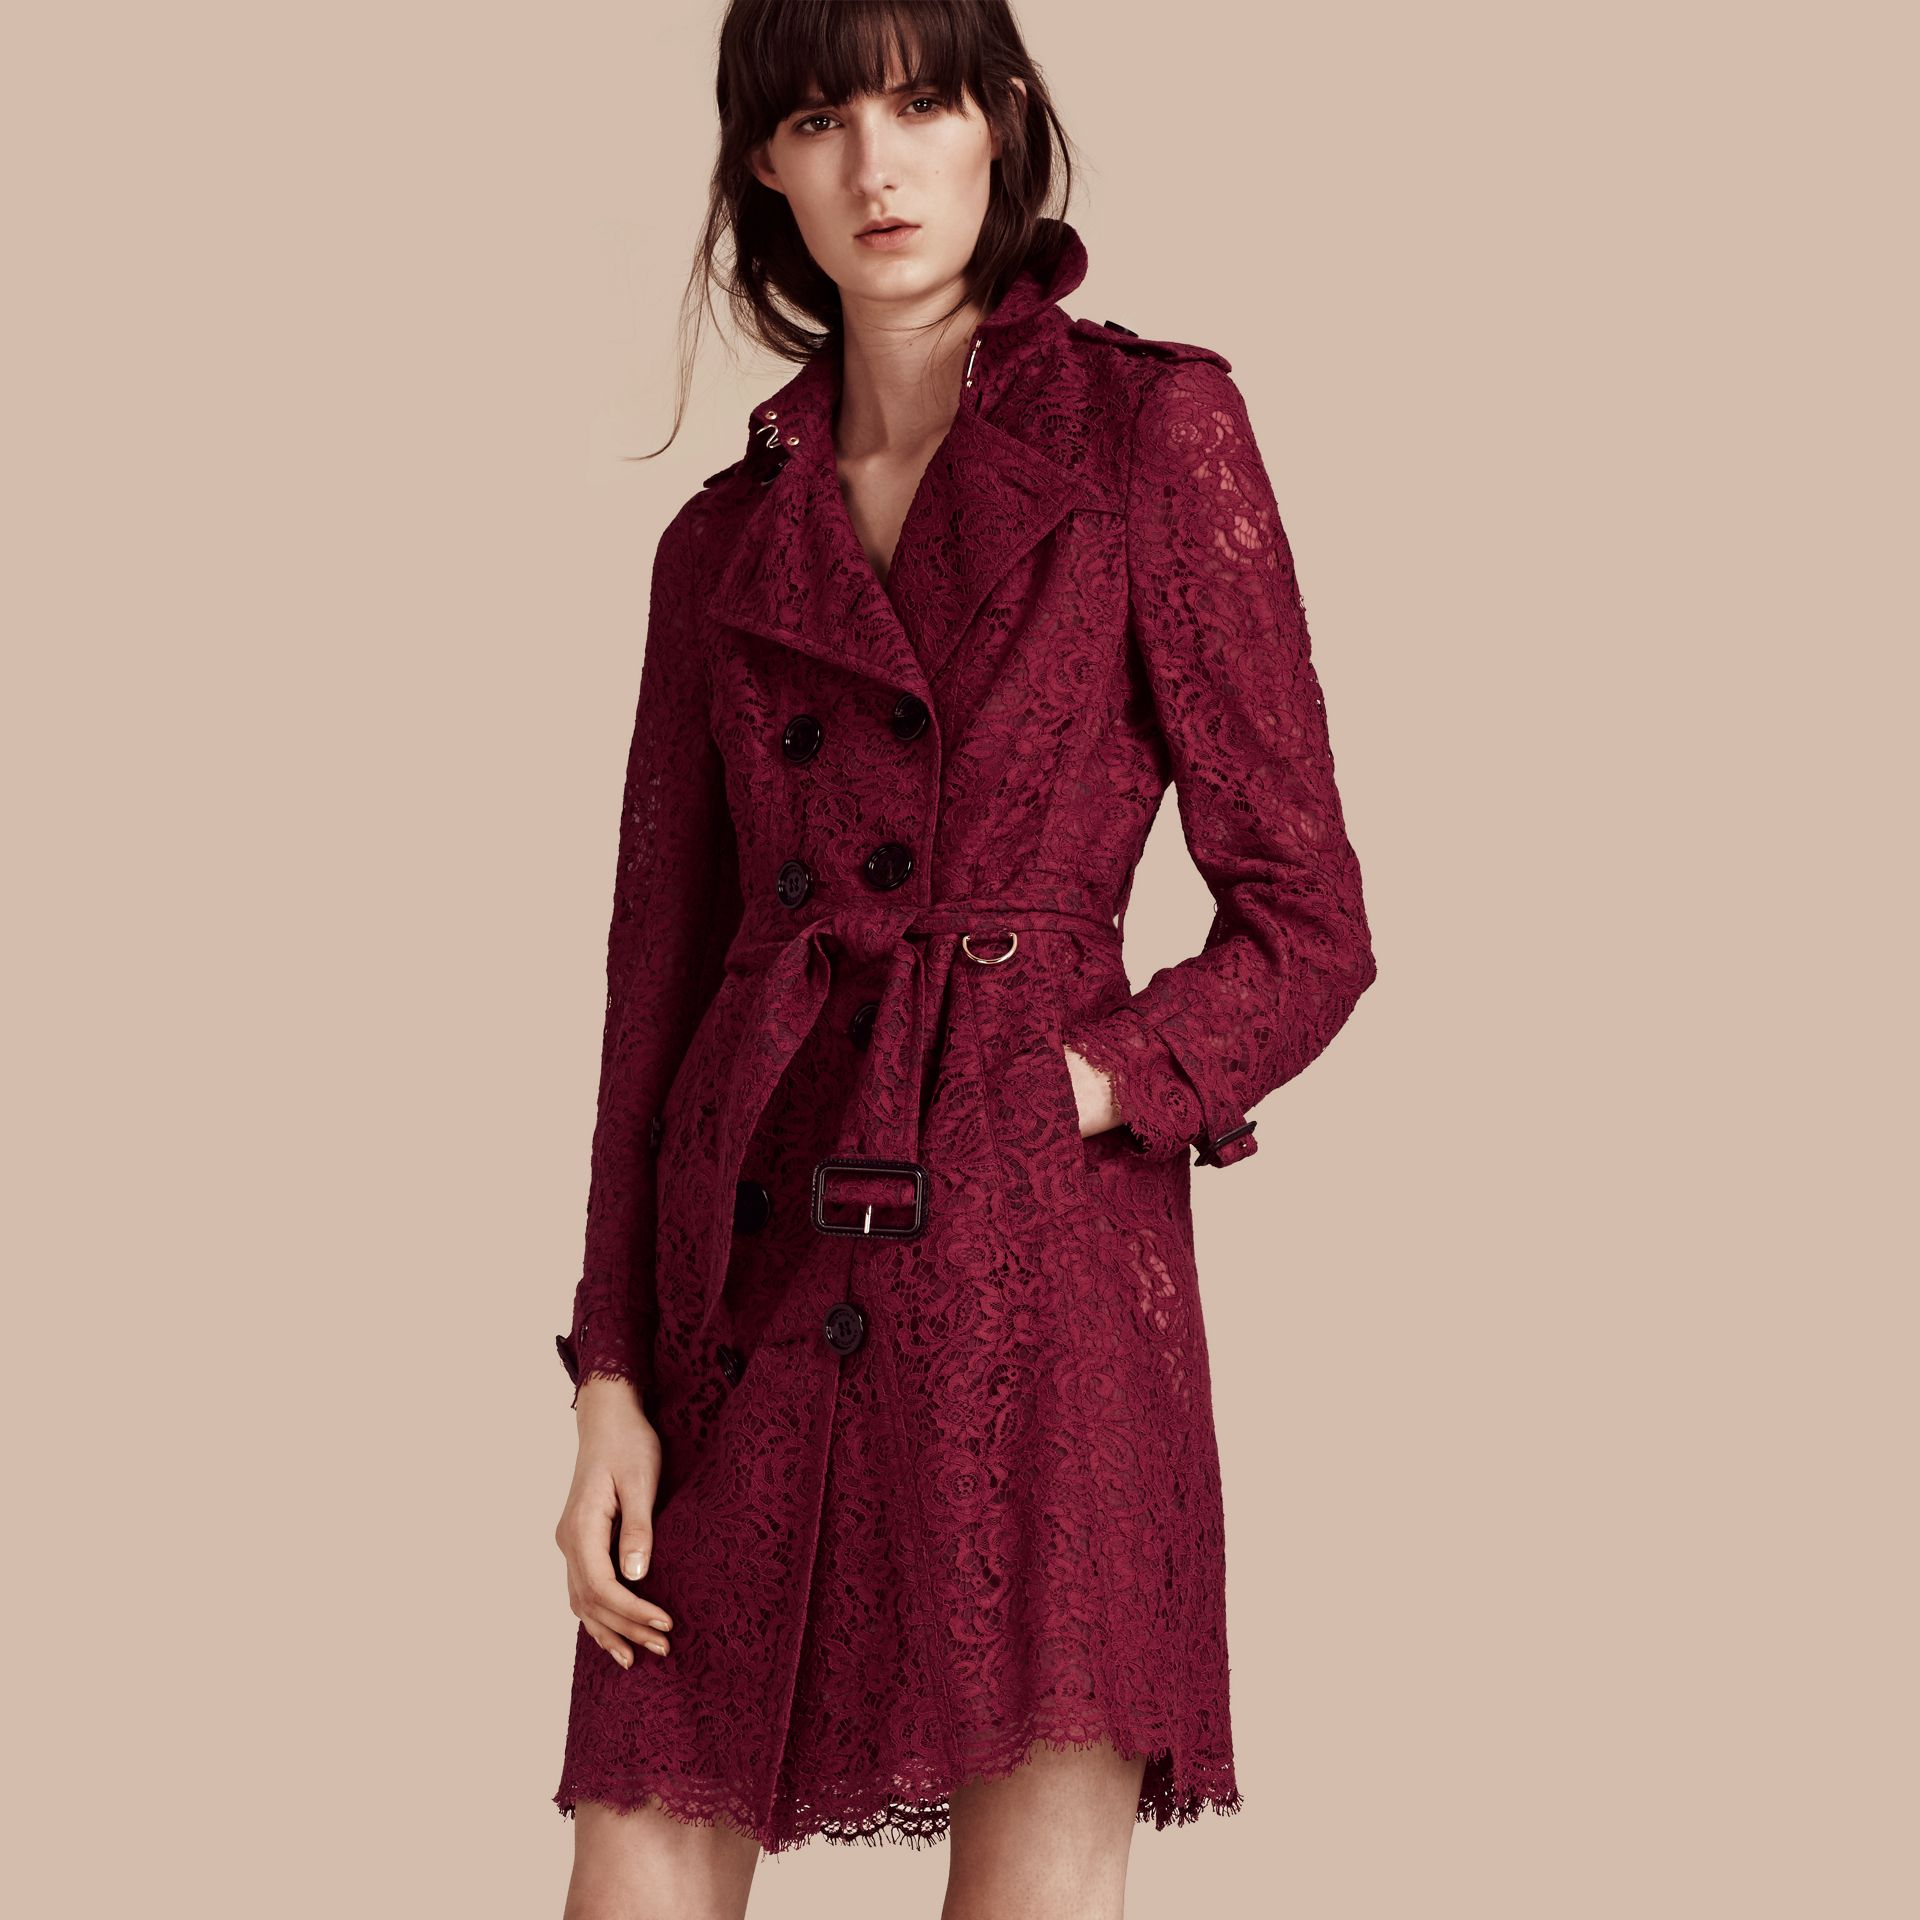 Dark crimson Italian Lace Scallop-hem Trench Coat - gallery image 1